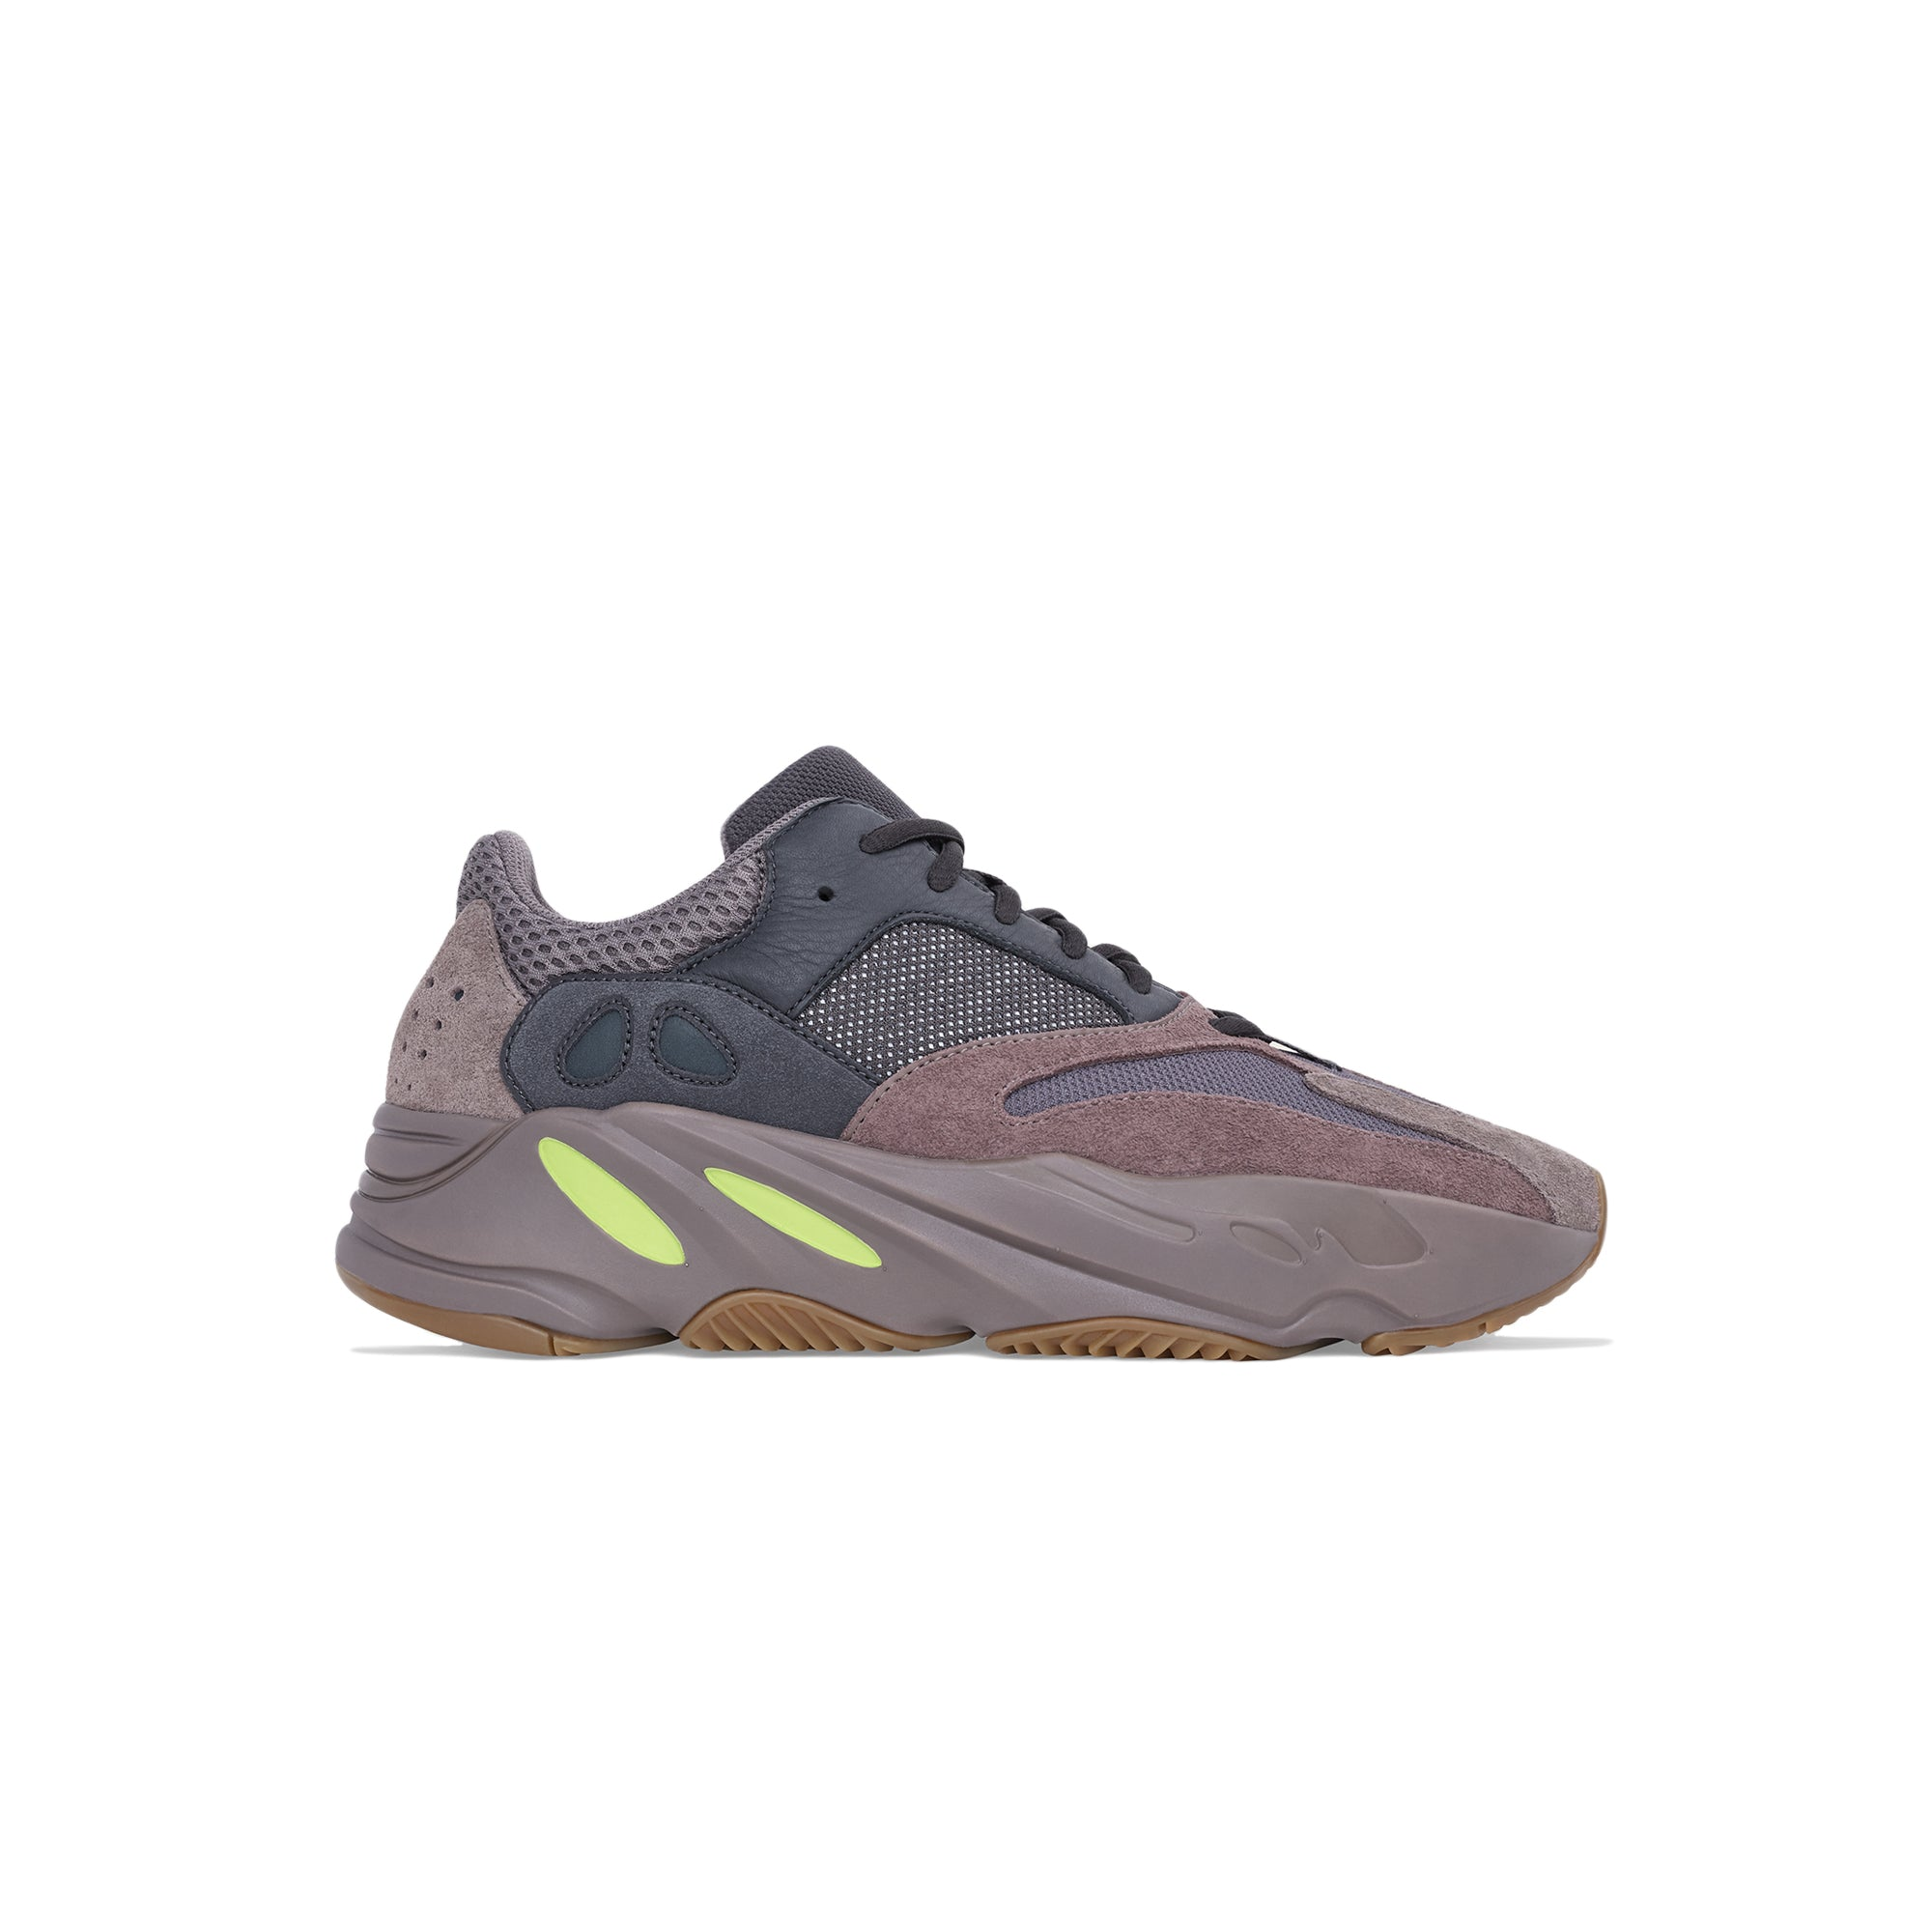 a3c787329 Adidas Yeezy 700 Mauve Outfit